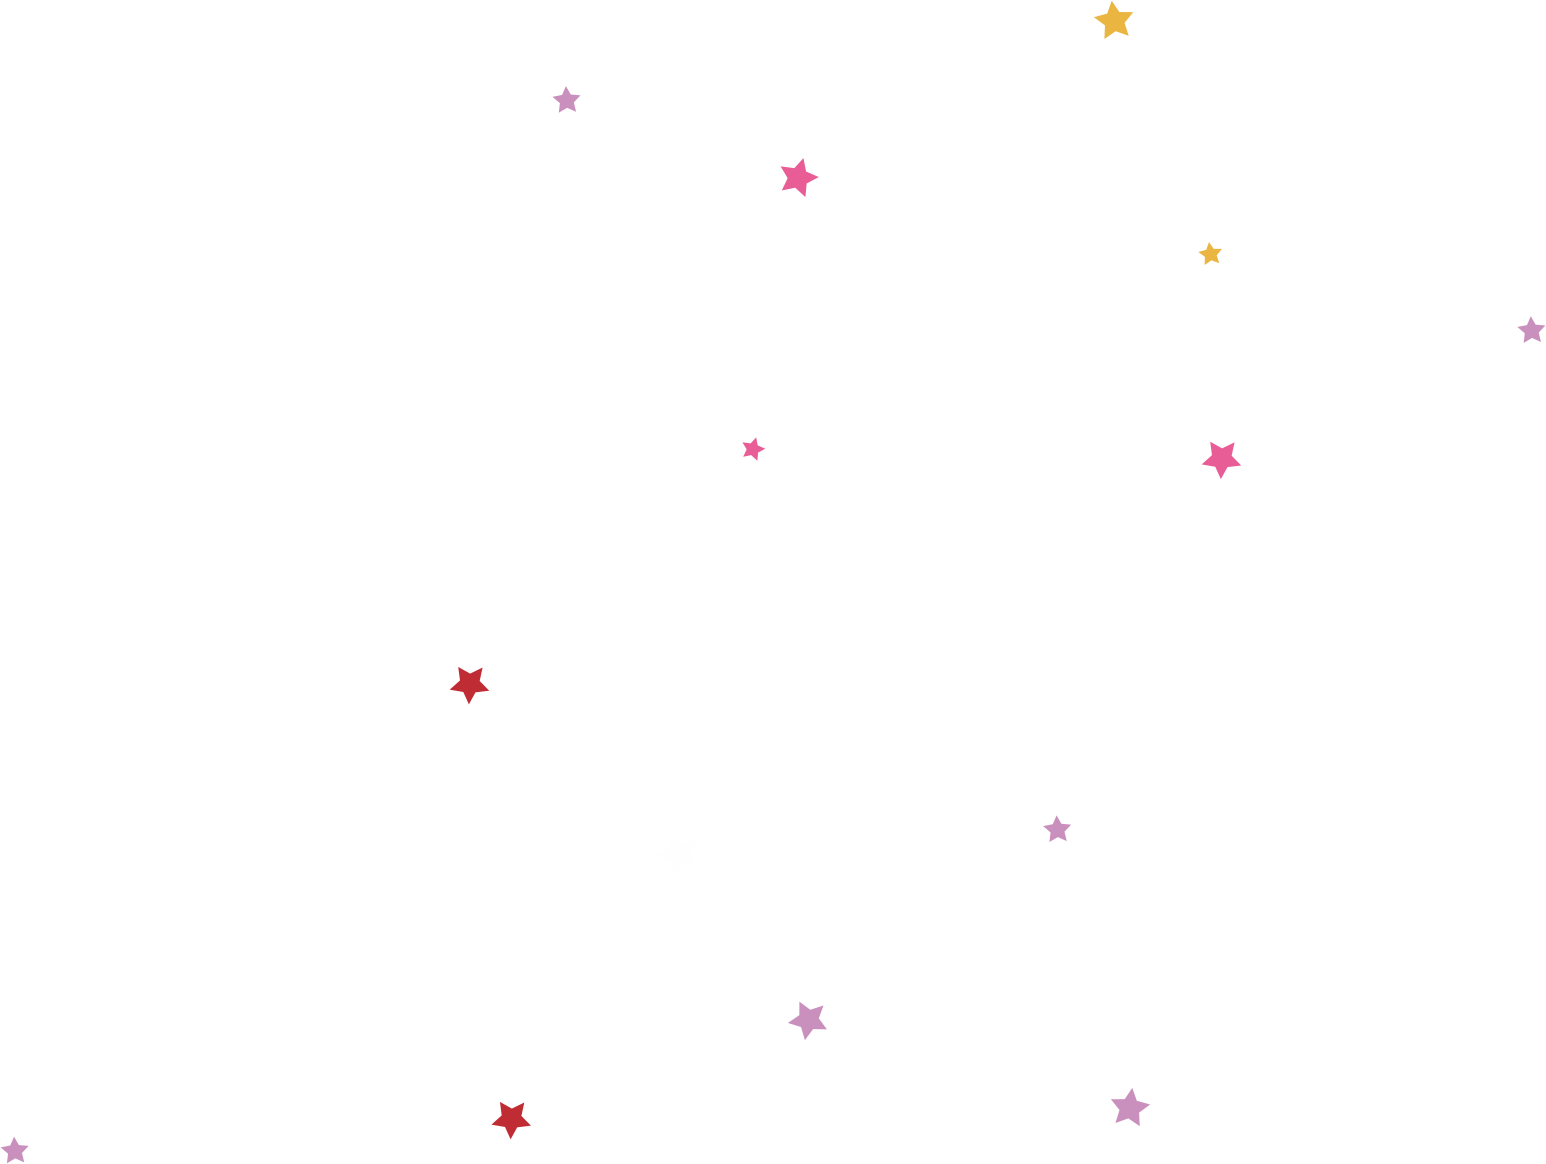 Stars background png. Square angle pink pattern